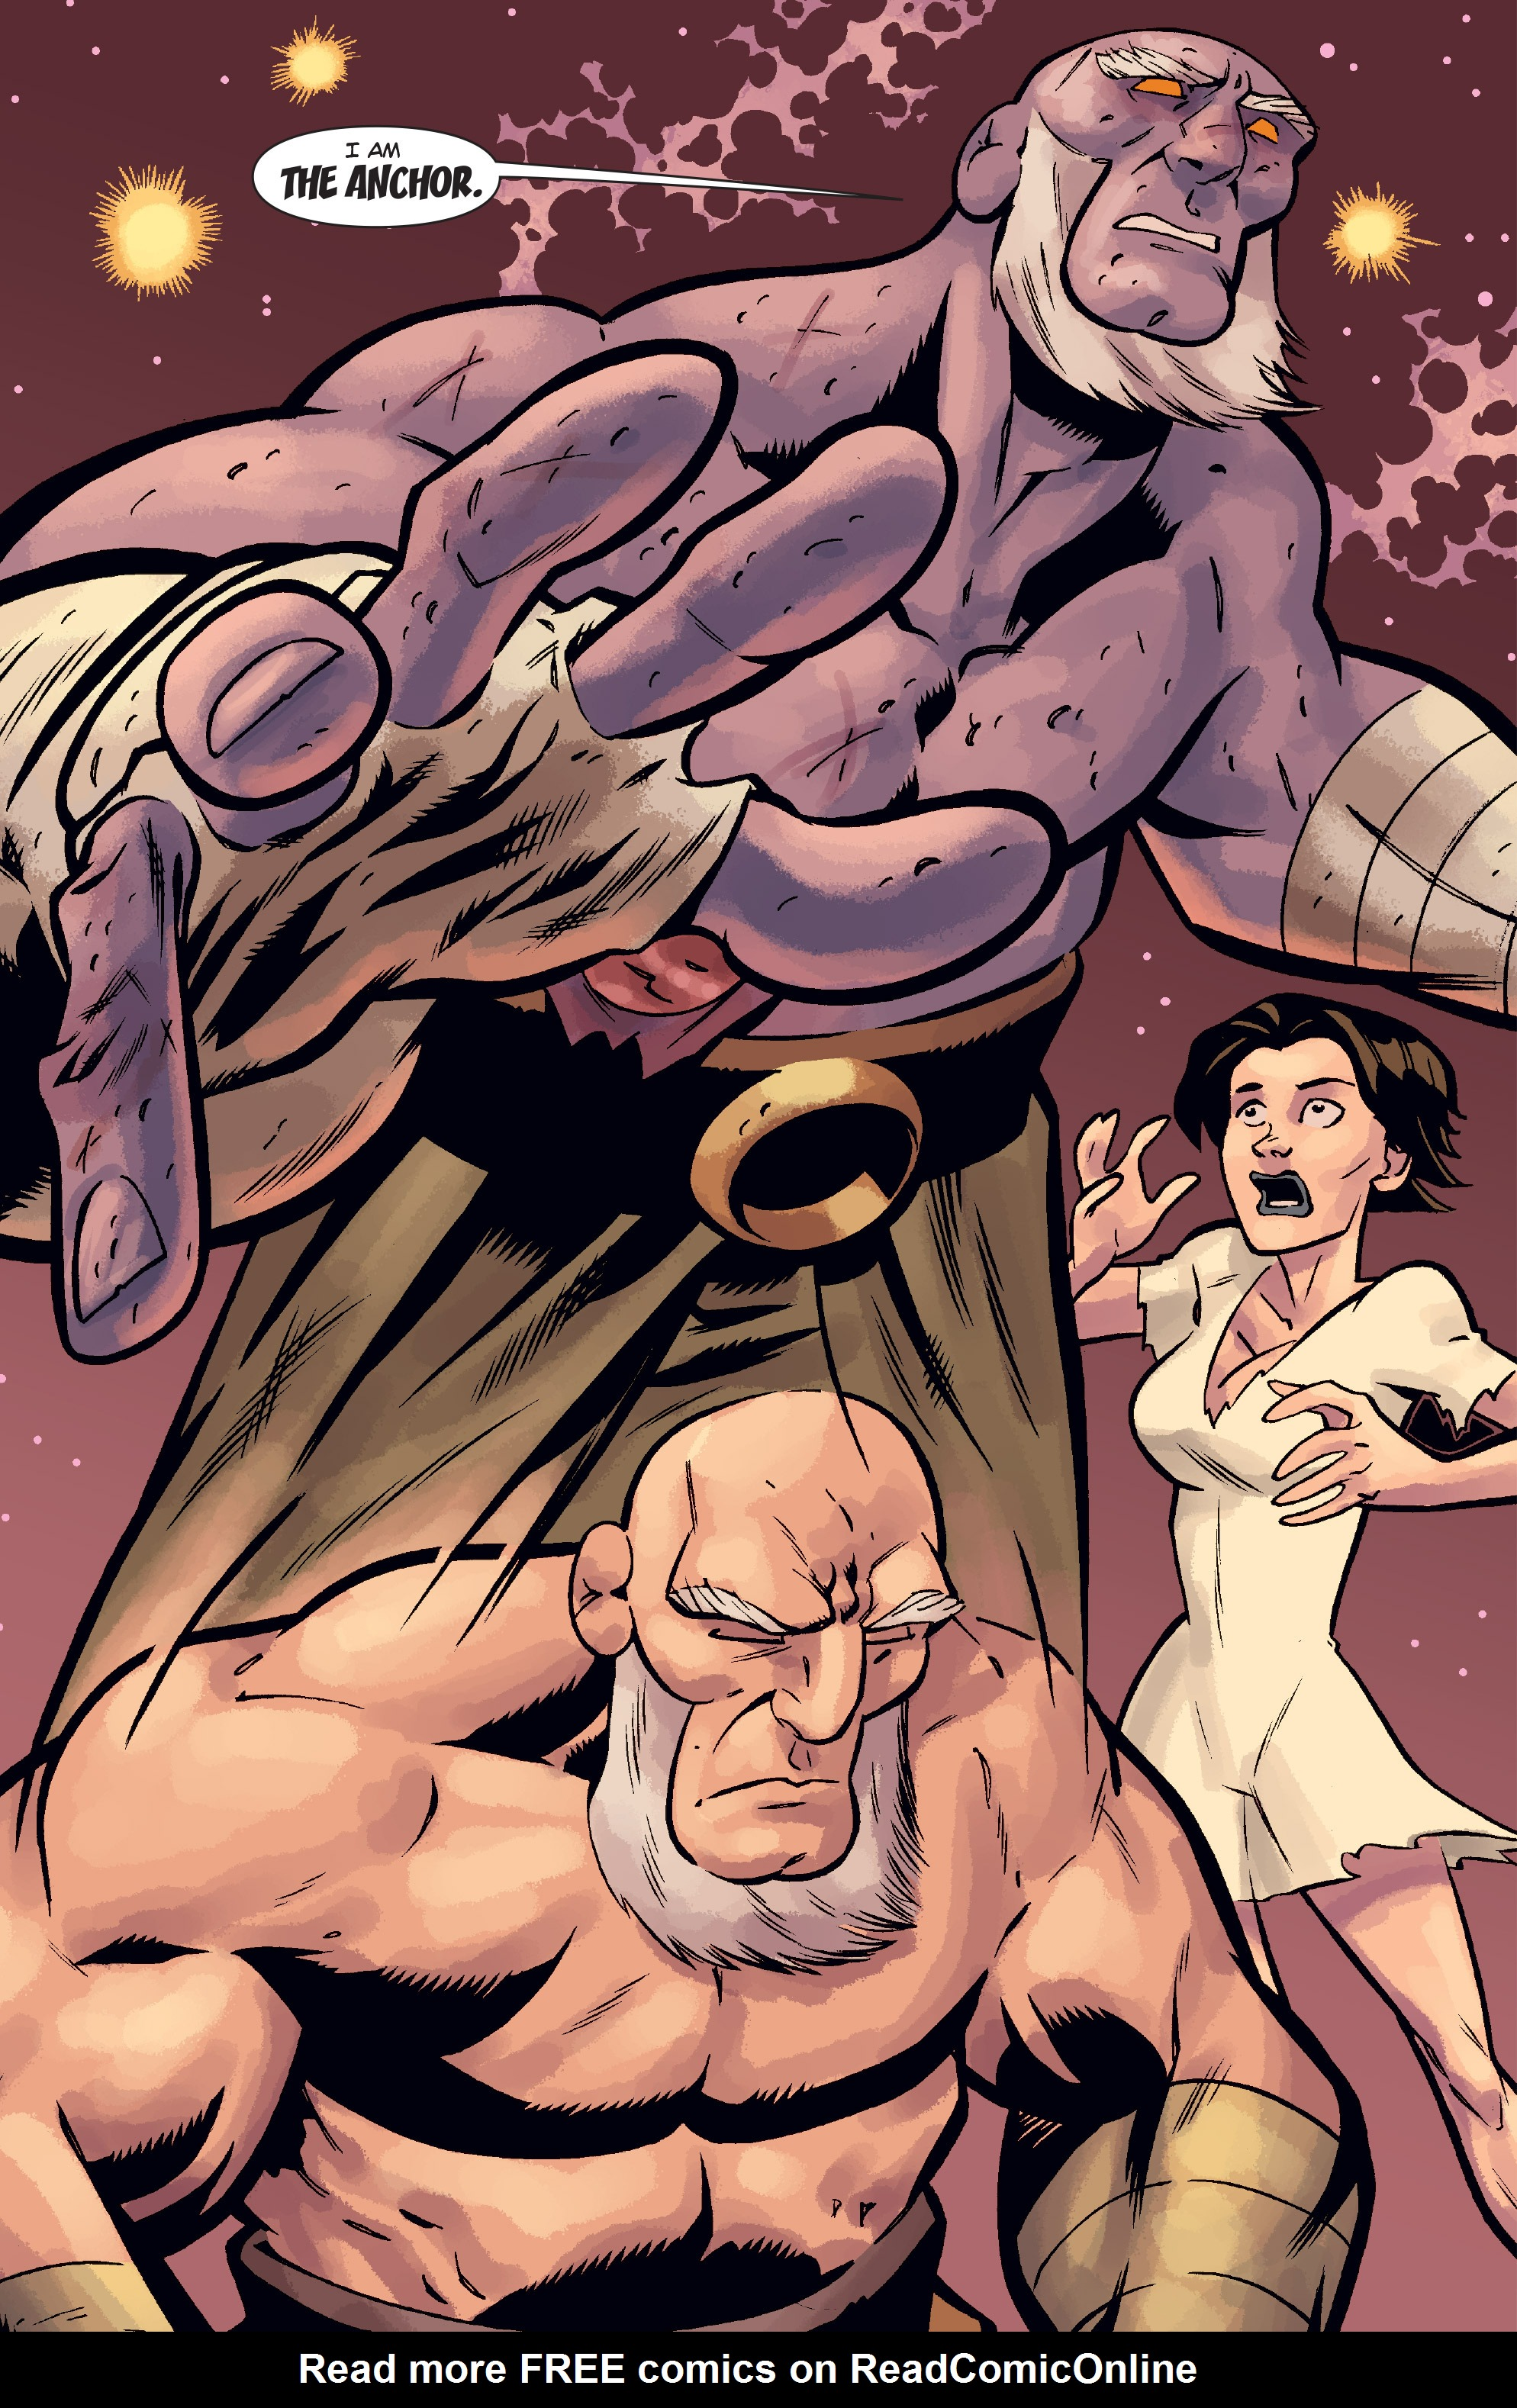 Read online The Anchor comic -  Issue # TPB 2 - 94